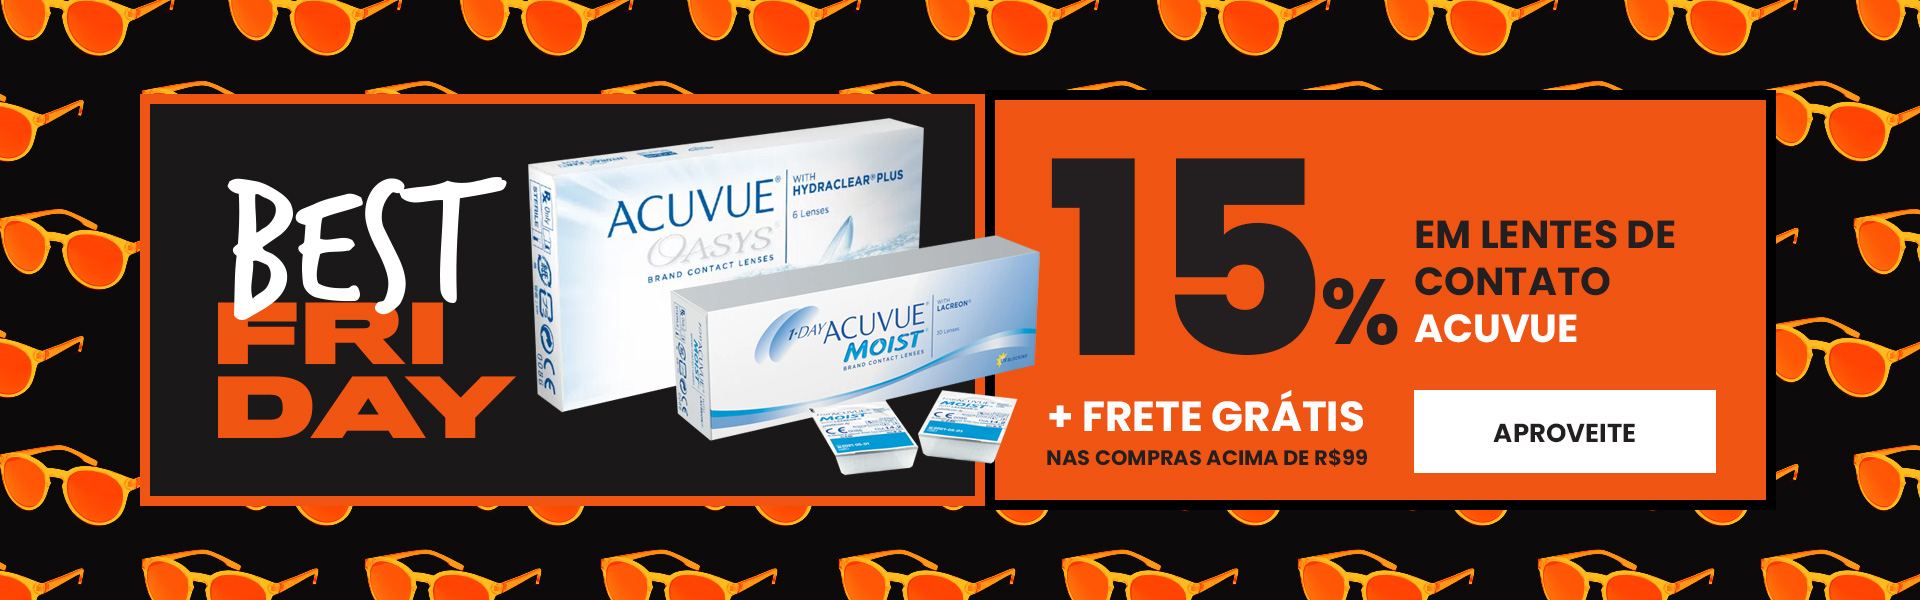 Banner - BF Acuvue